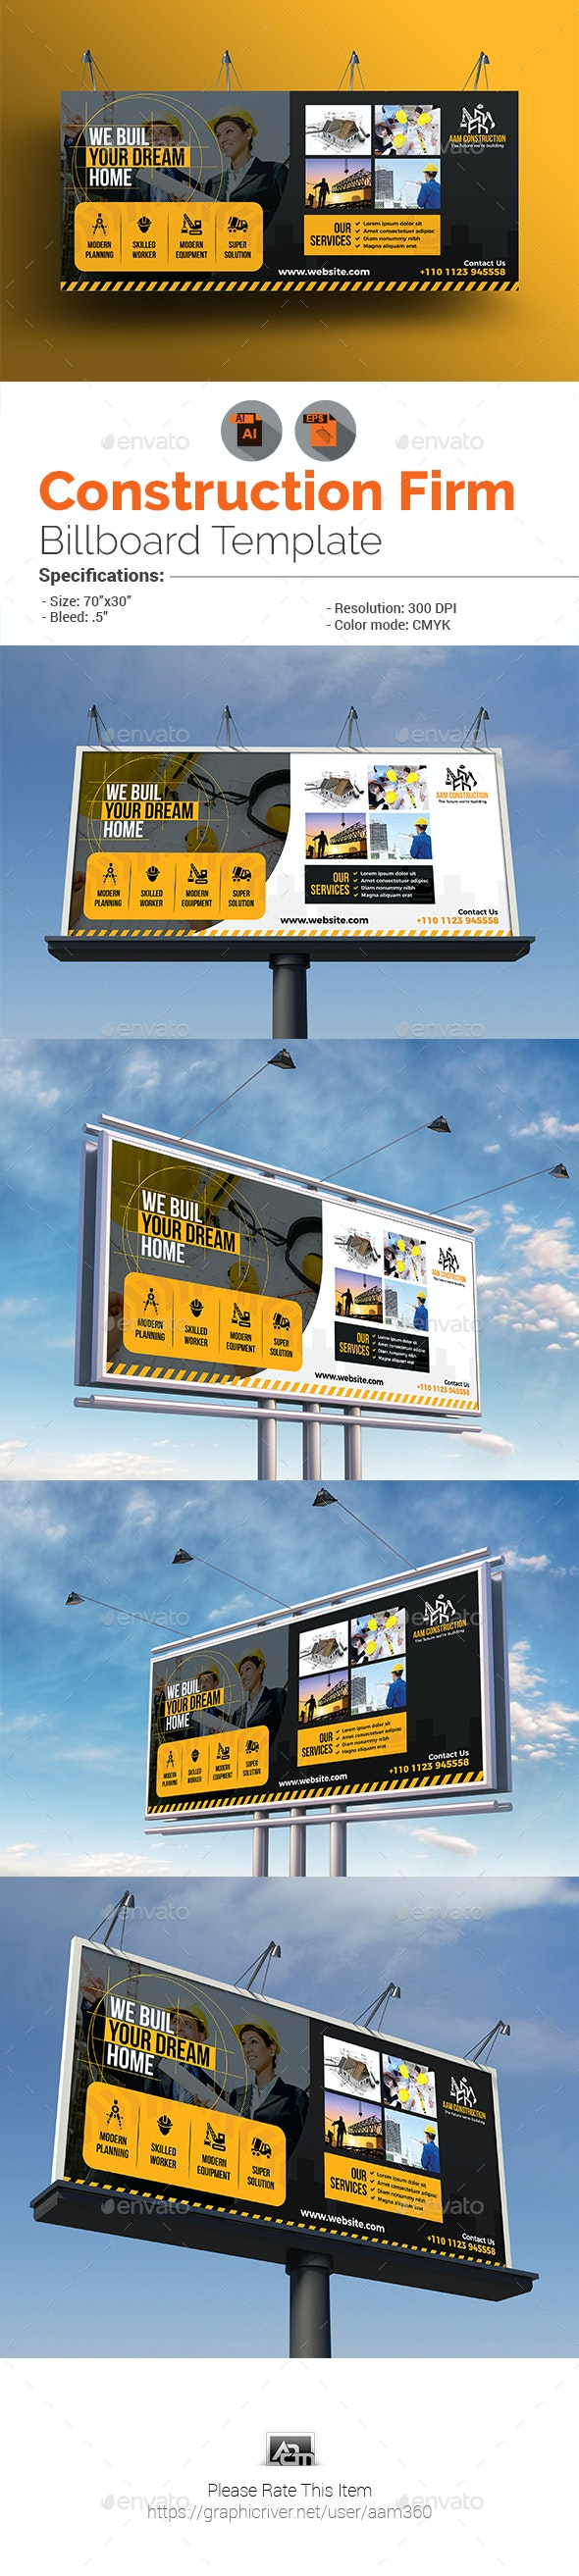 Construction Firm Billboard Template - Signage Print Templates